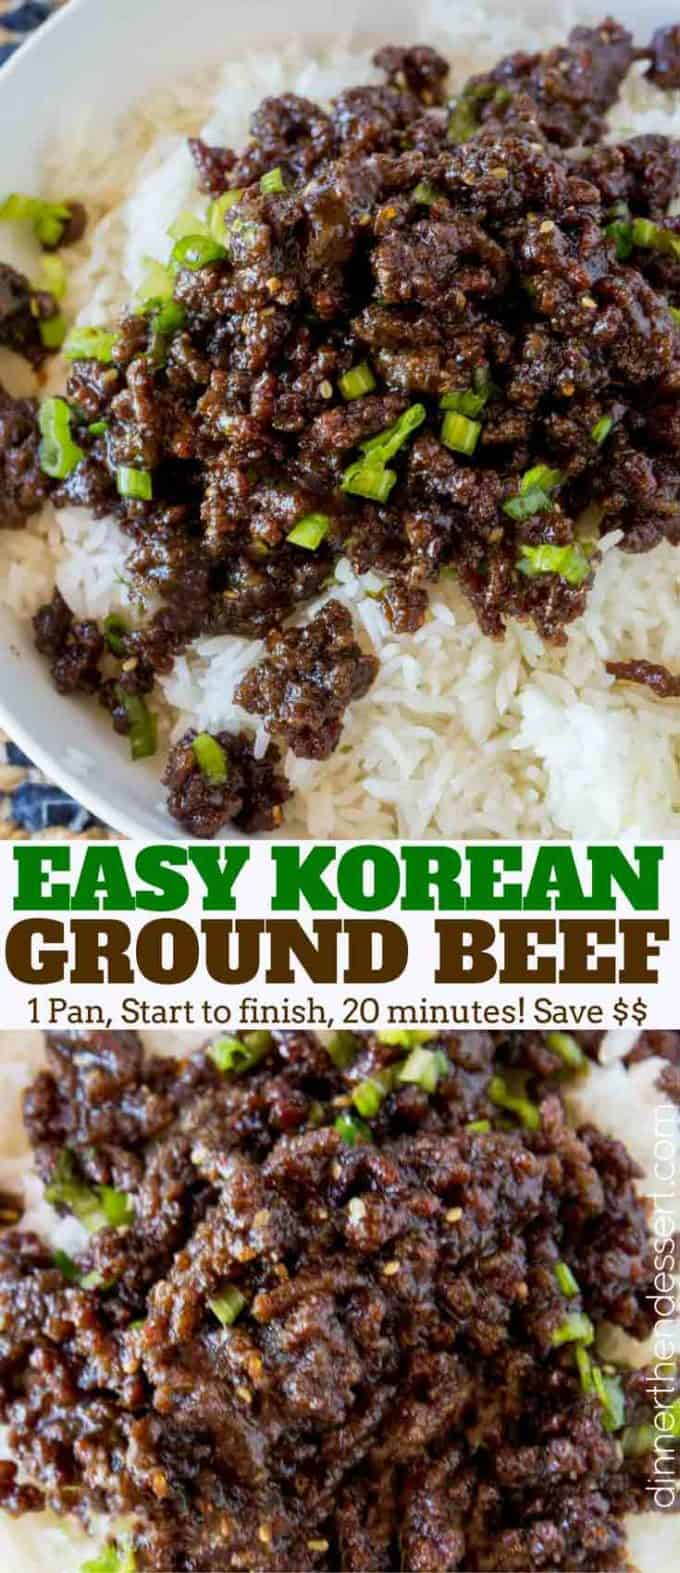 Sweet and Spicy Korean Ground Beef with all the flavors of your favorite Korean BBQ but for a third of the cost and kid friendly!